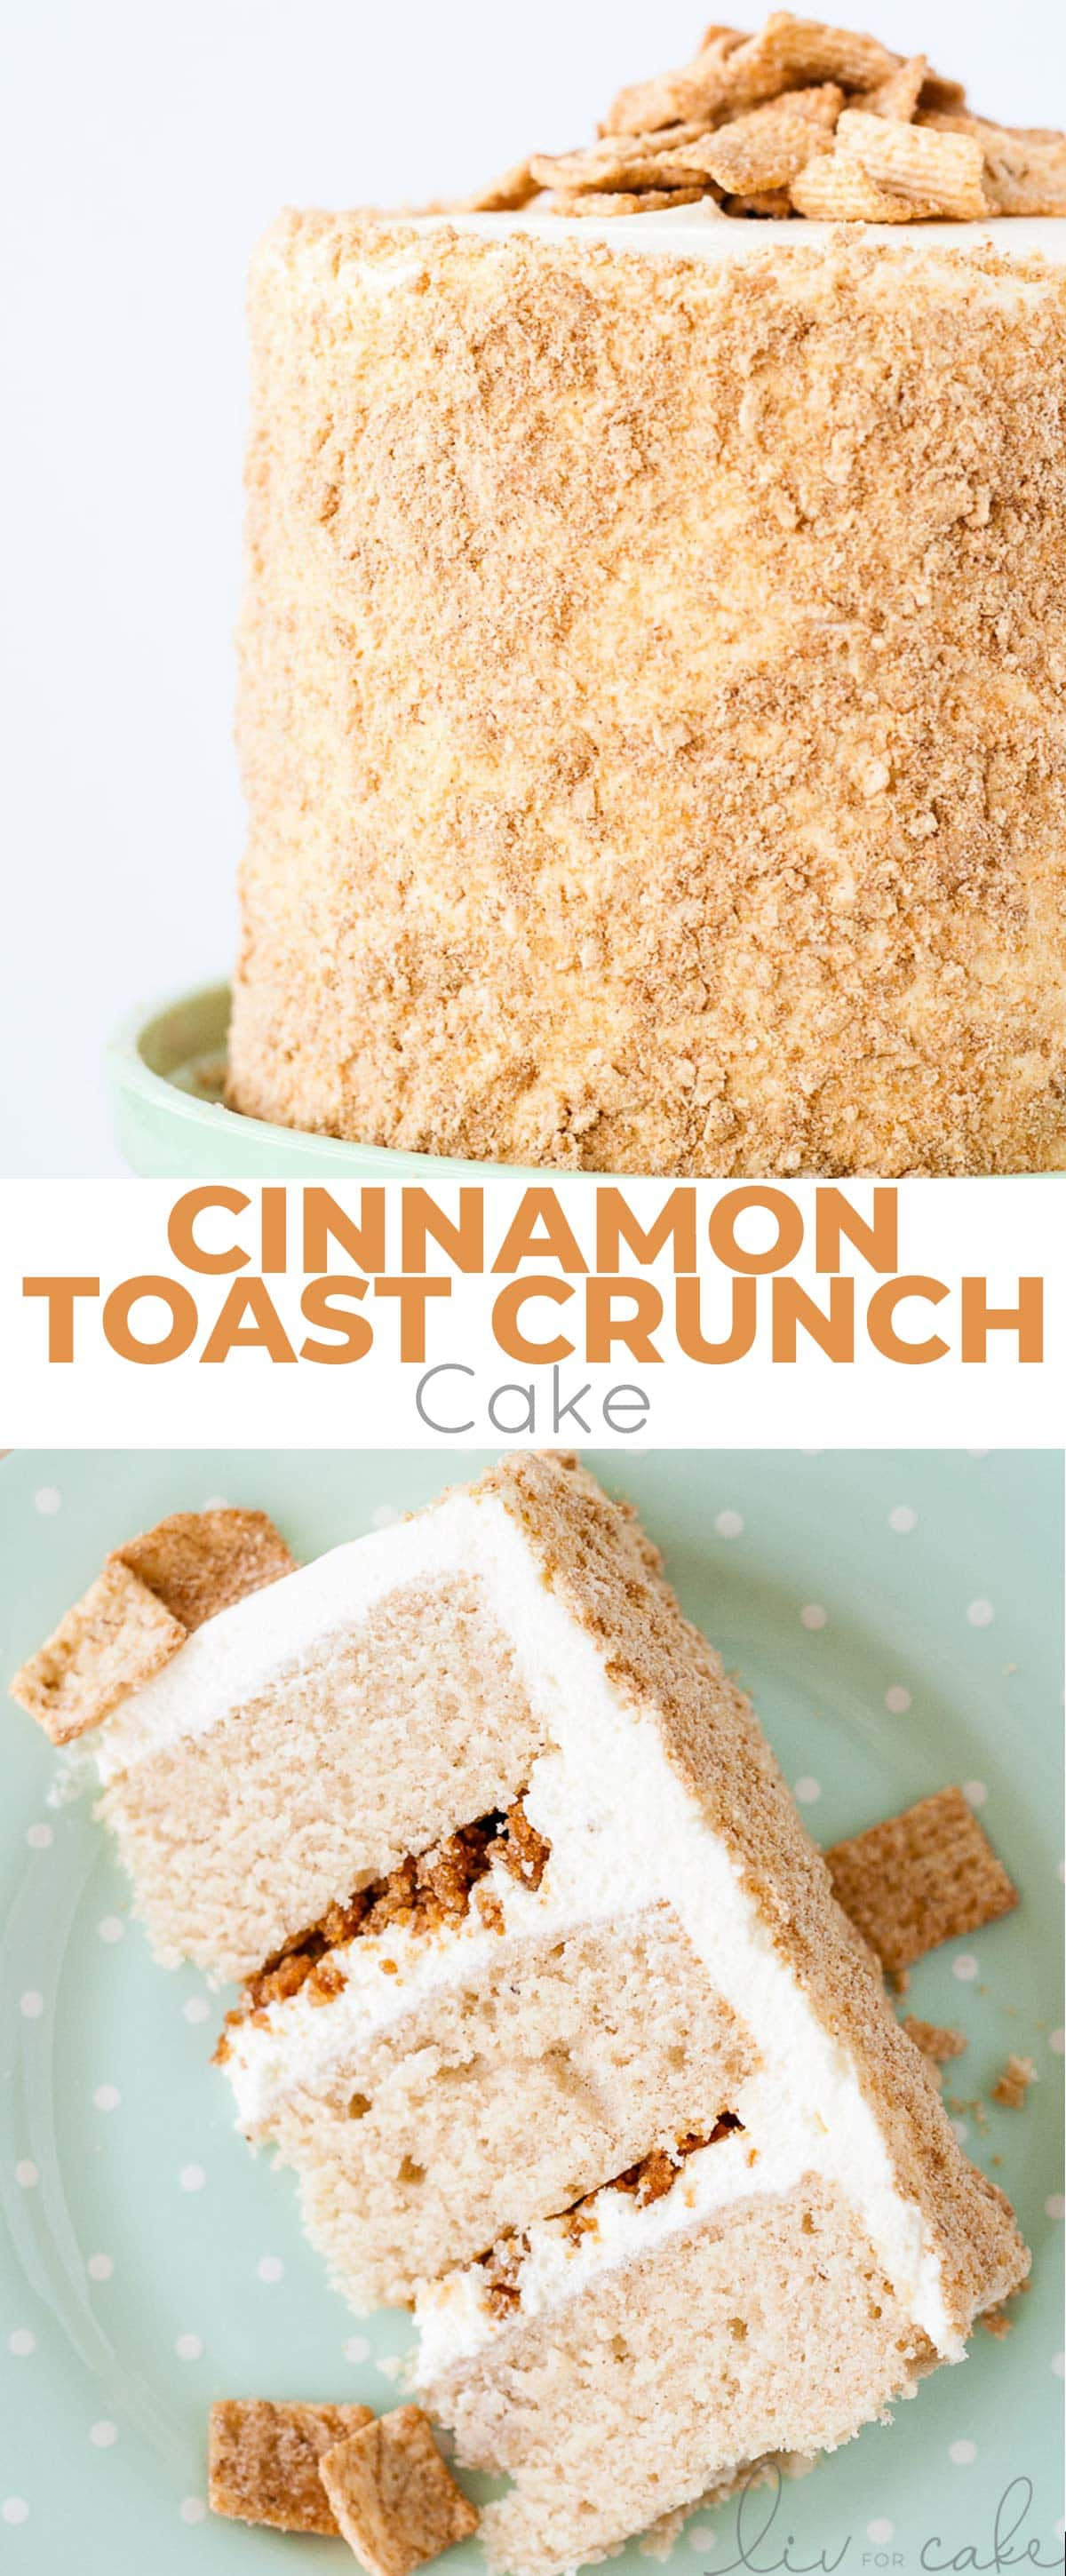 Cinnamon Toast Crunch Cake photo collage.